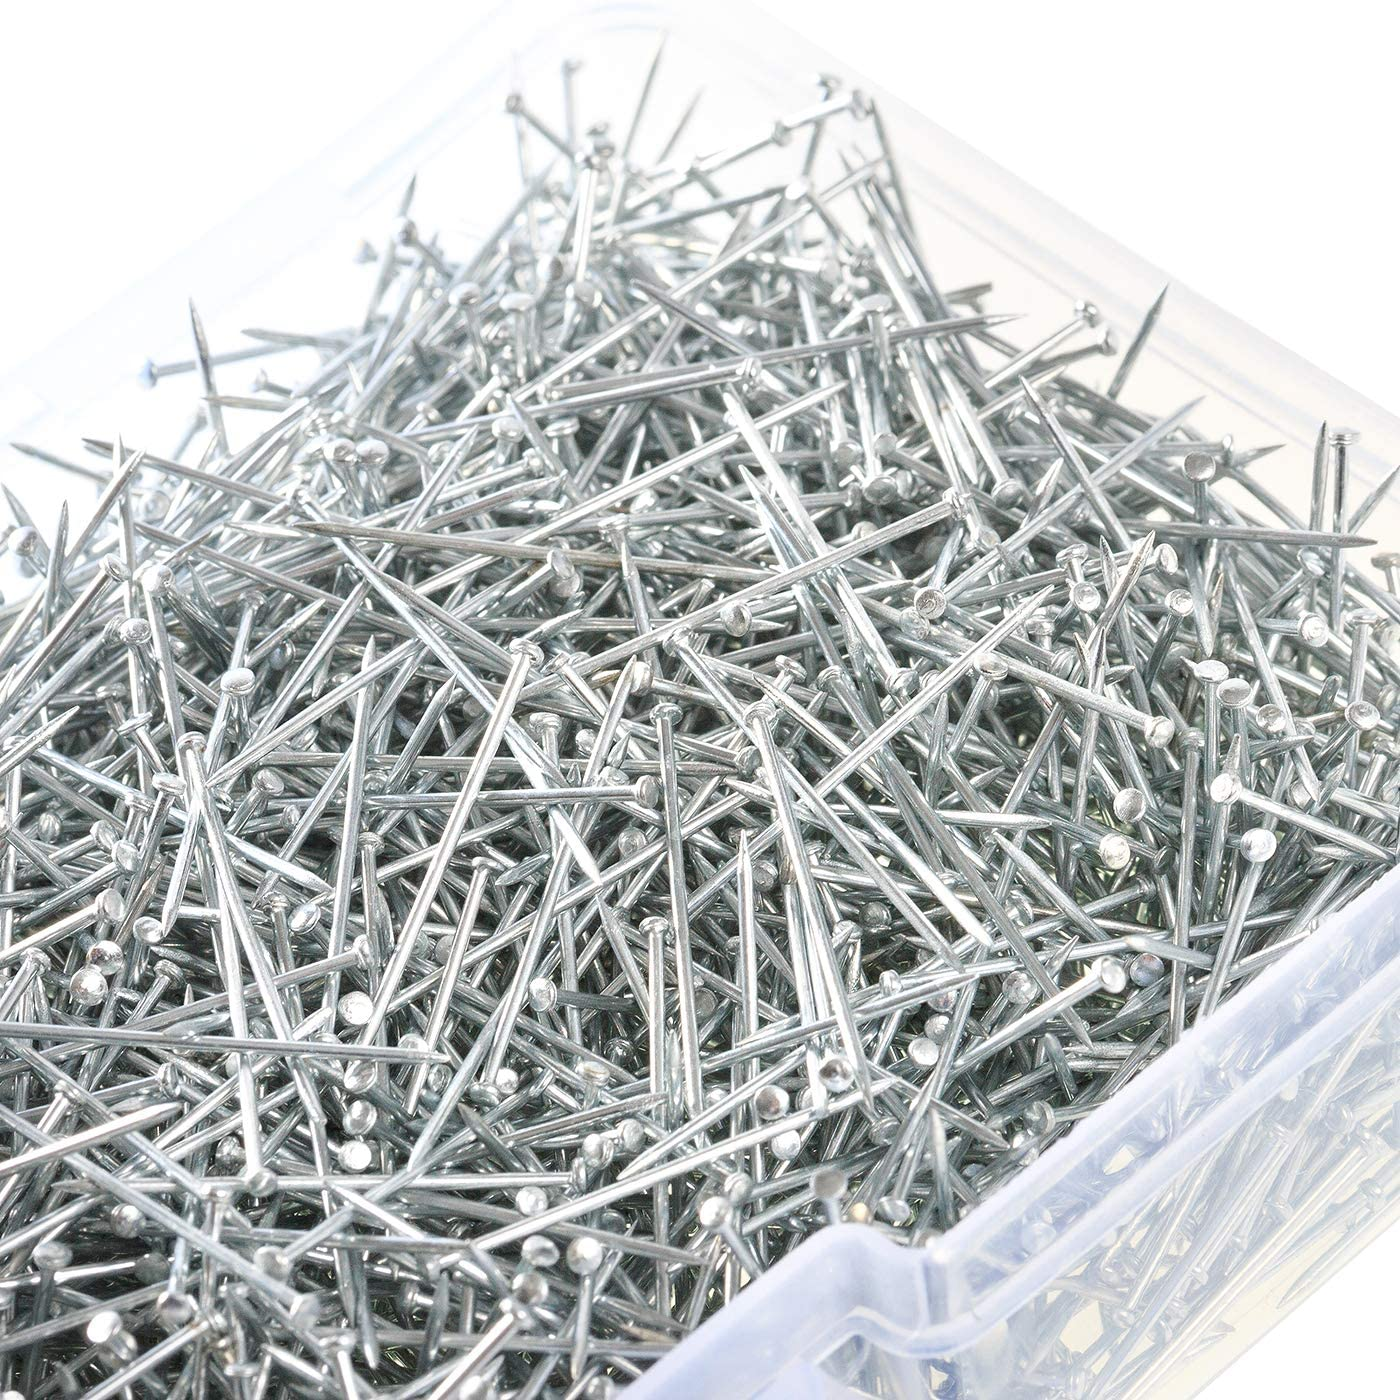 U_star 3000 Pieces Stainless Steel Pin Dressmaker Pins Fine Satin Pin for Sewing and Craft, Jewelry Making 1 1/16 Inch